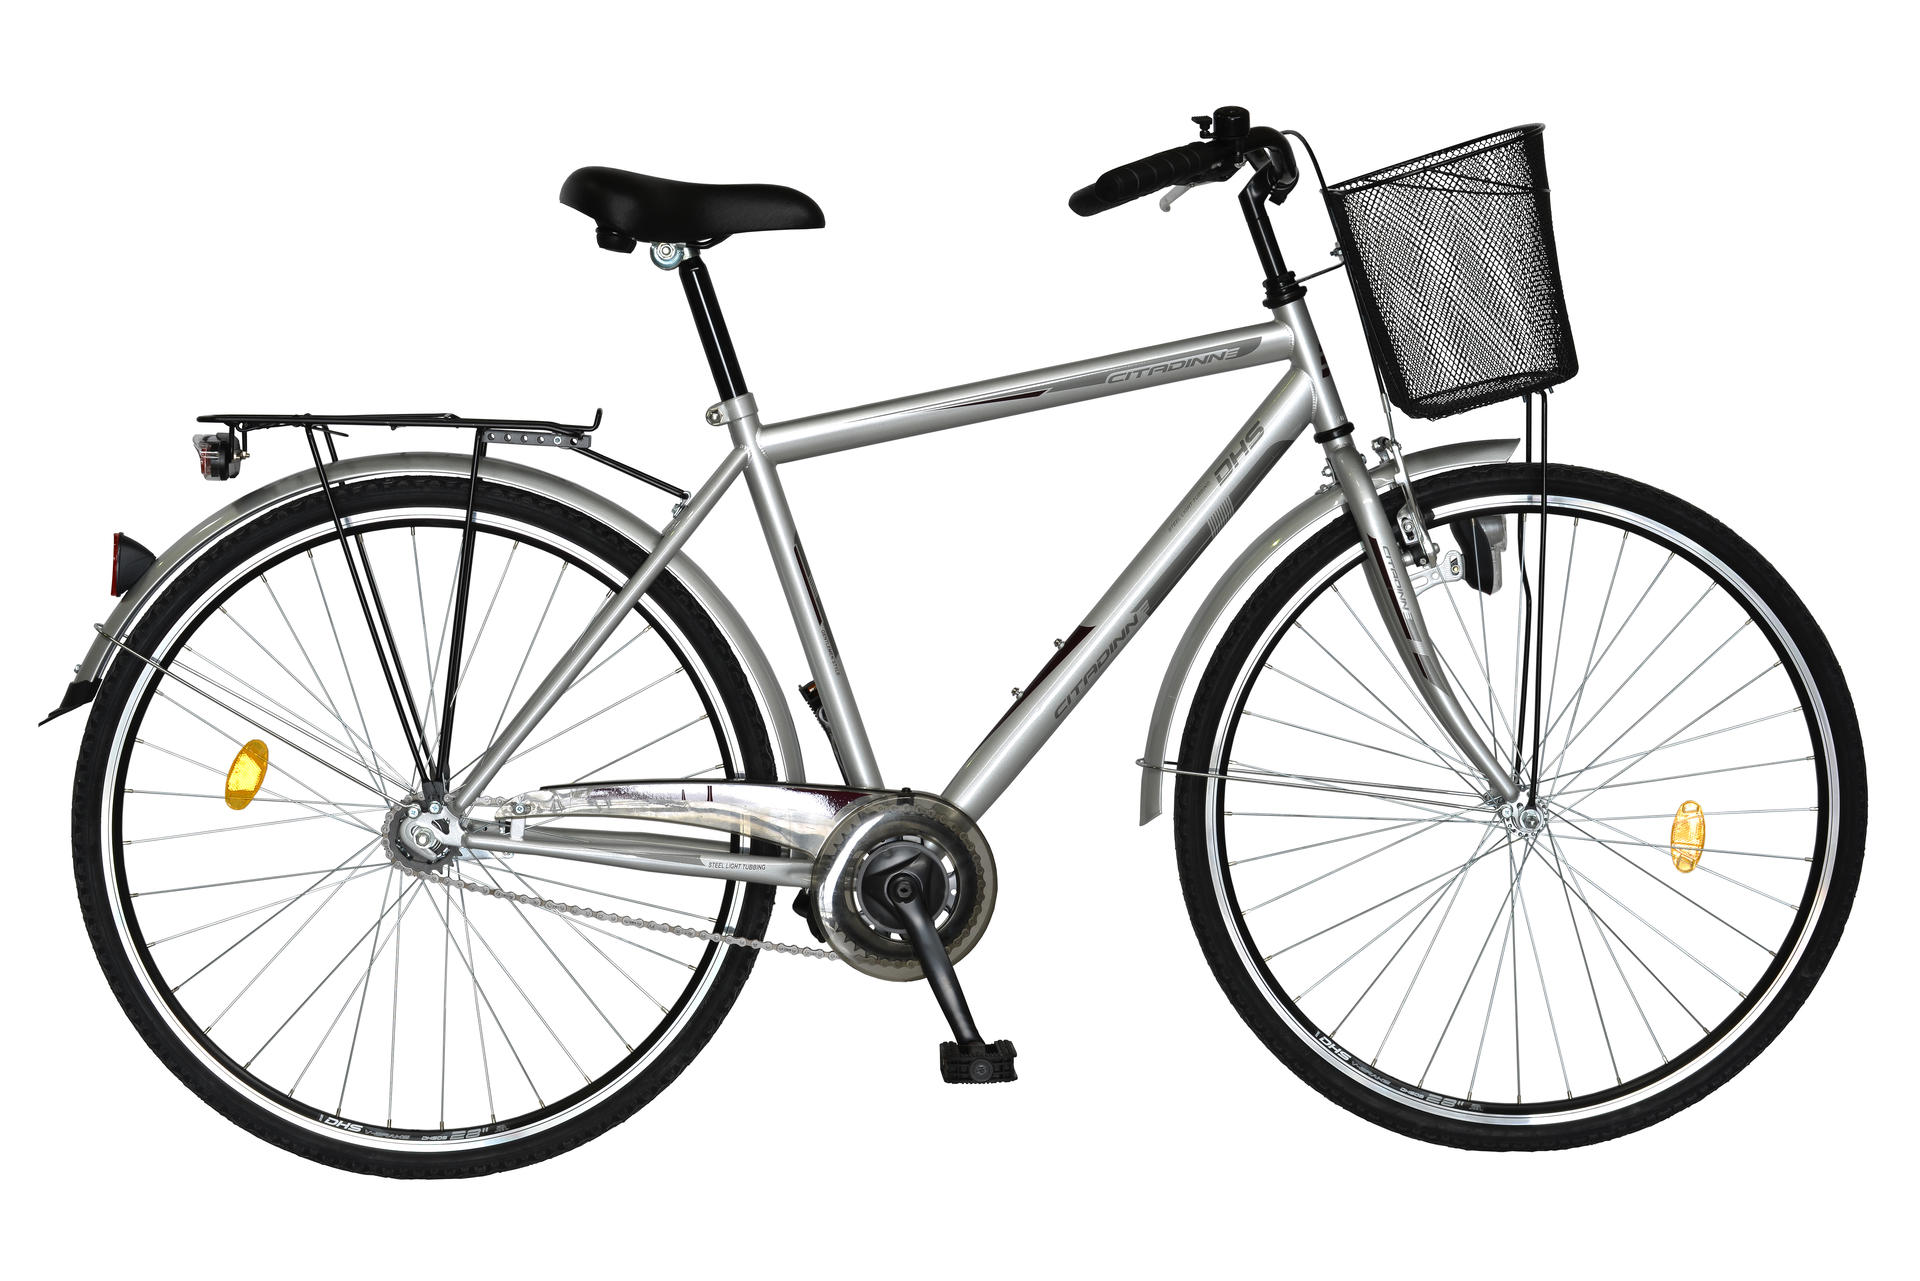 Bicicletta uomo da città DHS Citadinne 2831 Grey-Light-Red 520mm